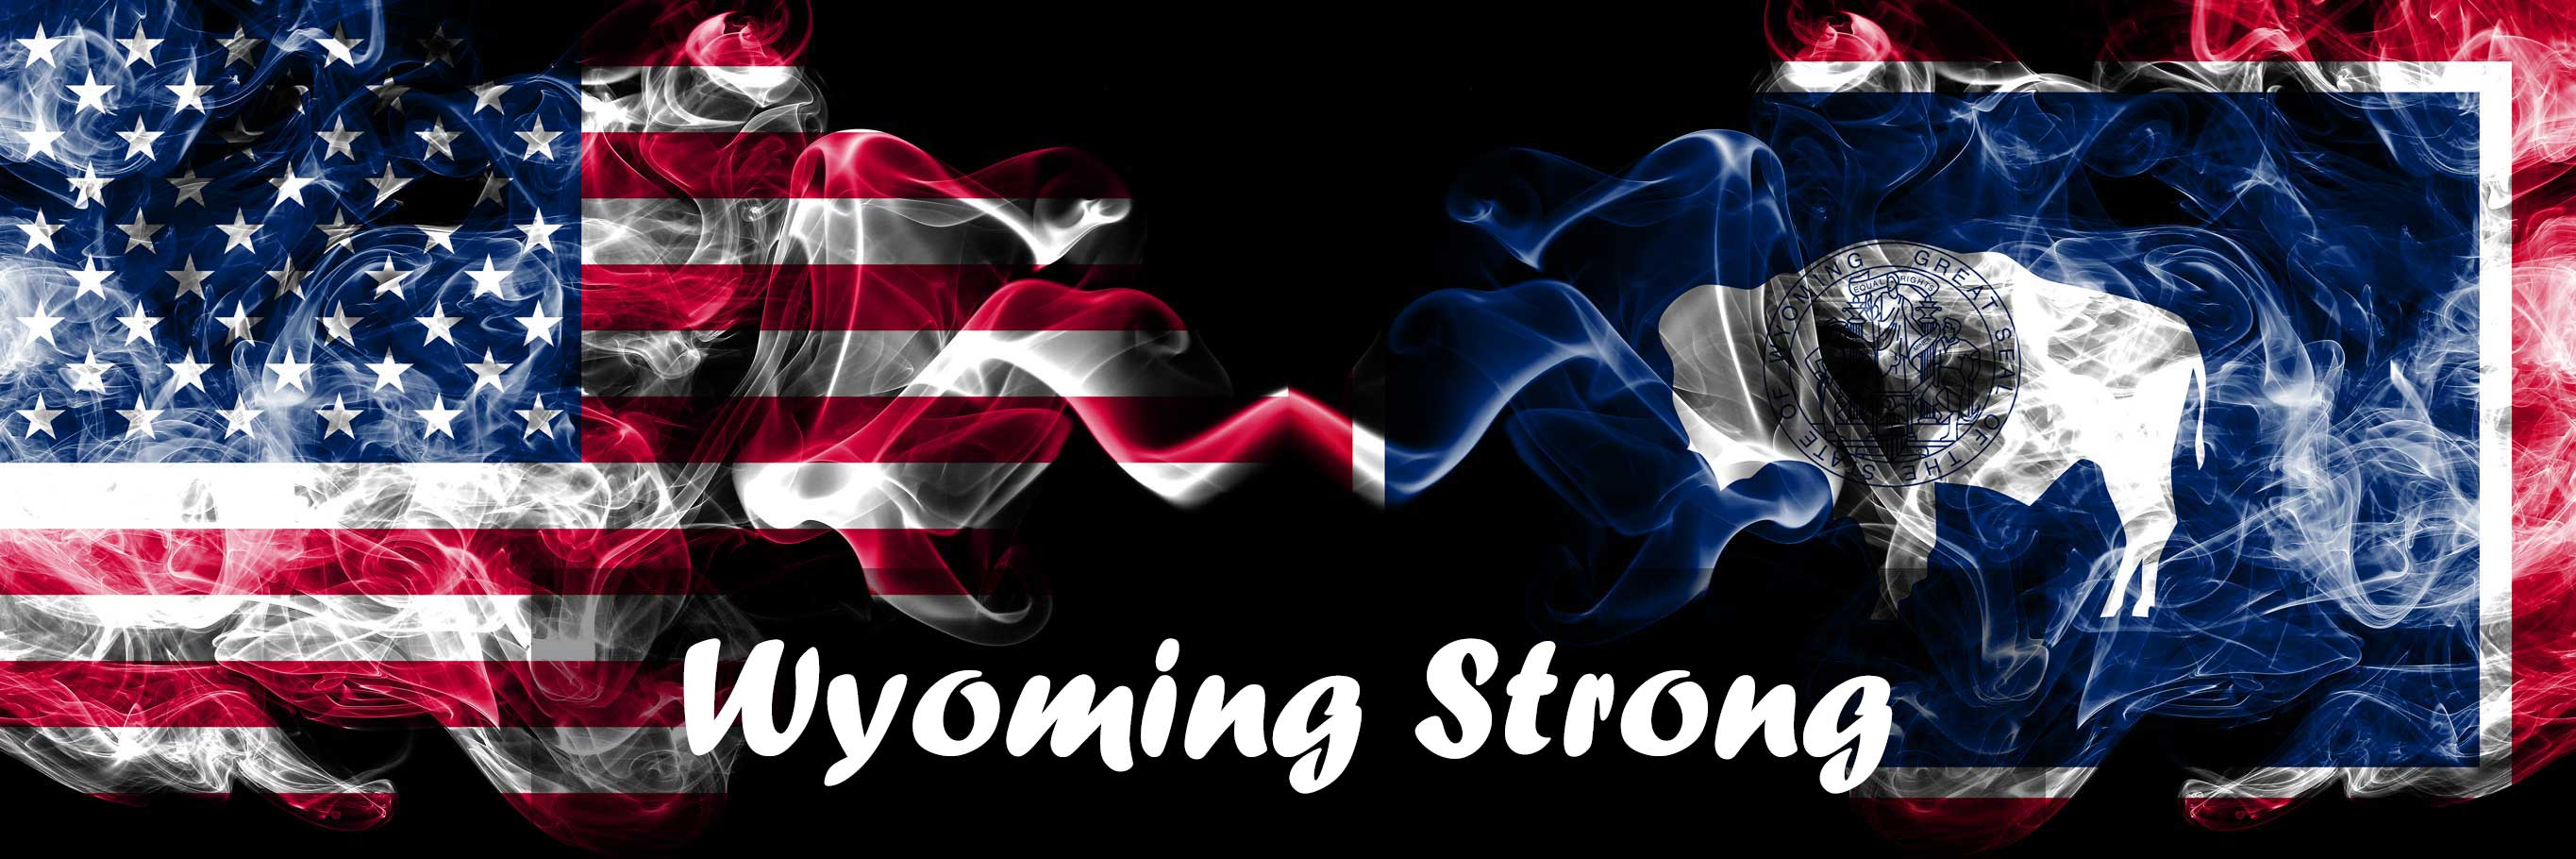 Usa Vs Wyoming State Background Abstract Concept Peace Smokes Flags Wyoming Strong